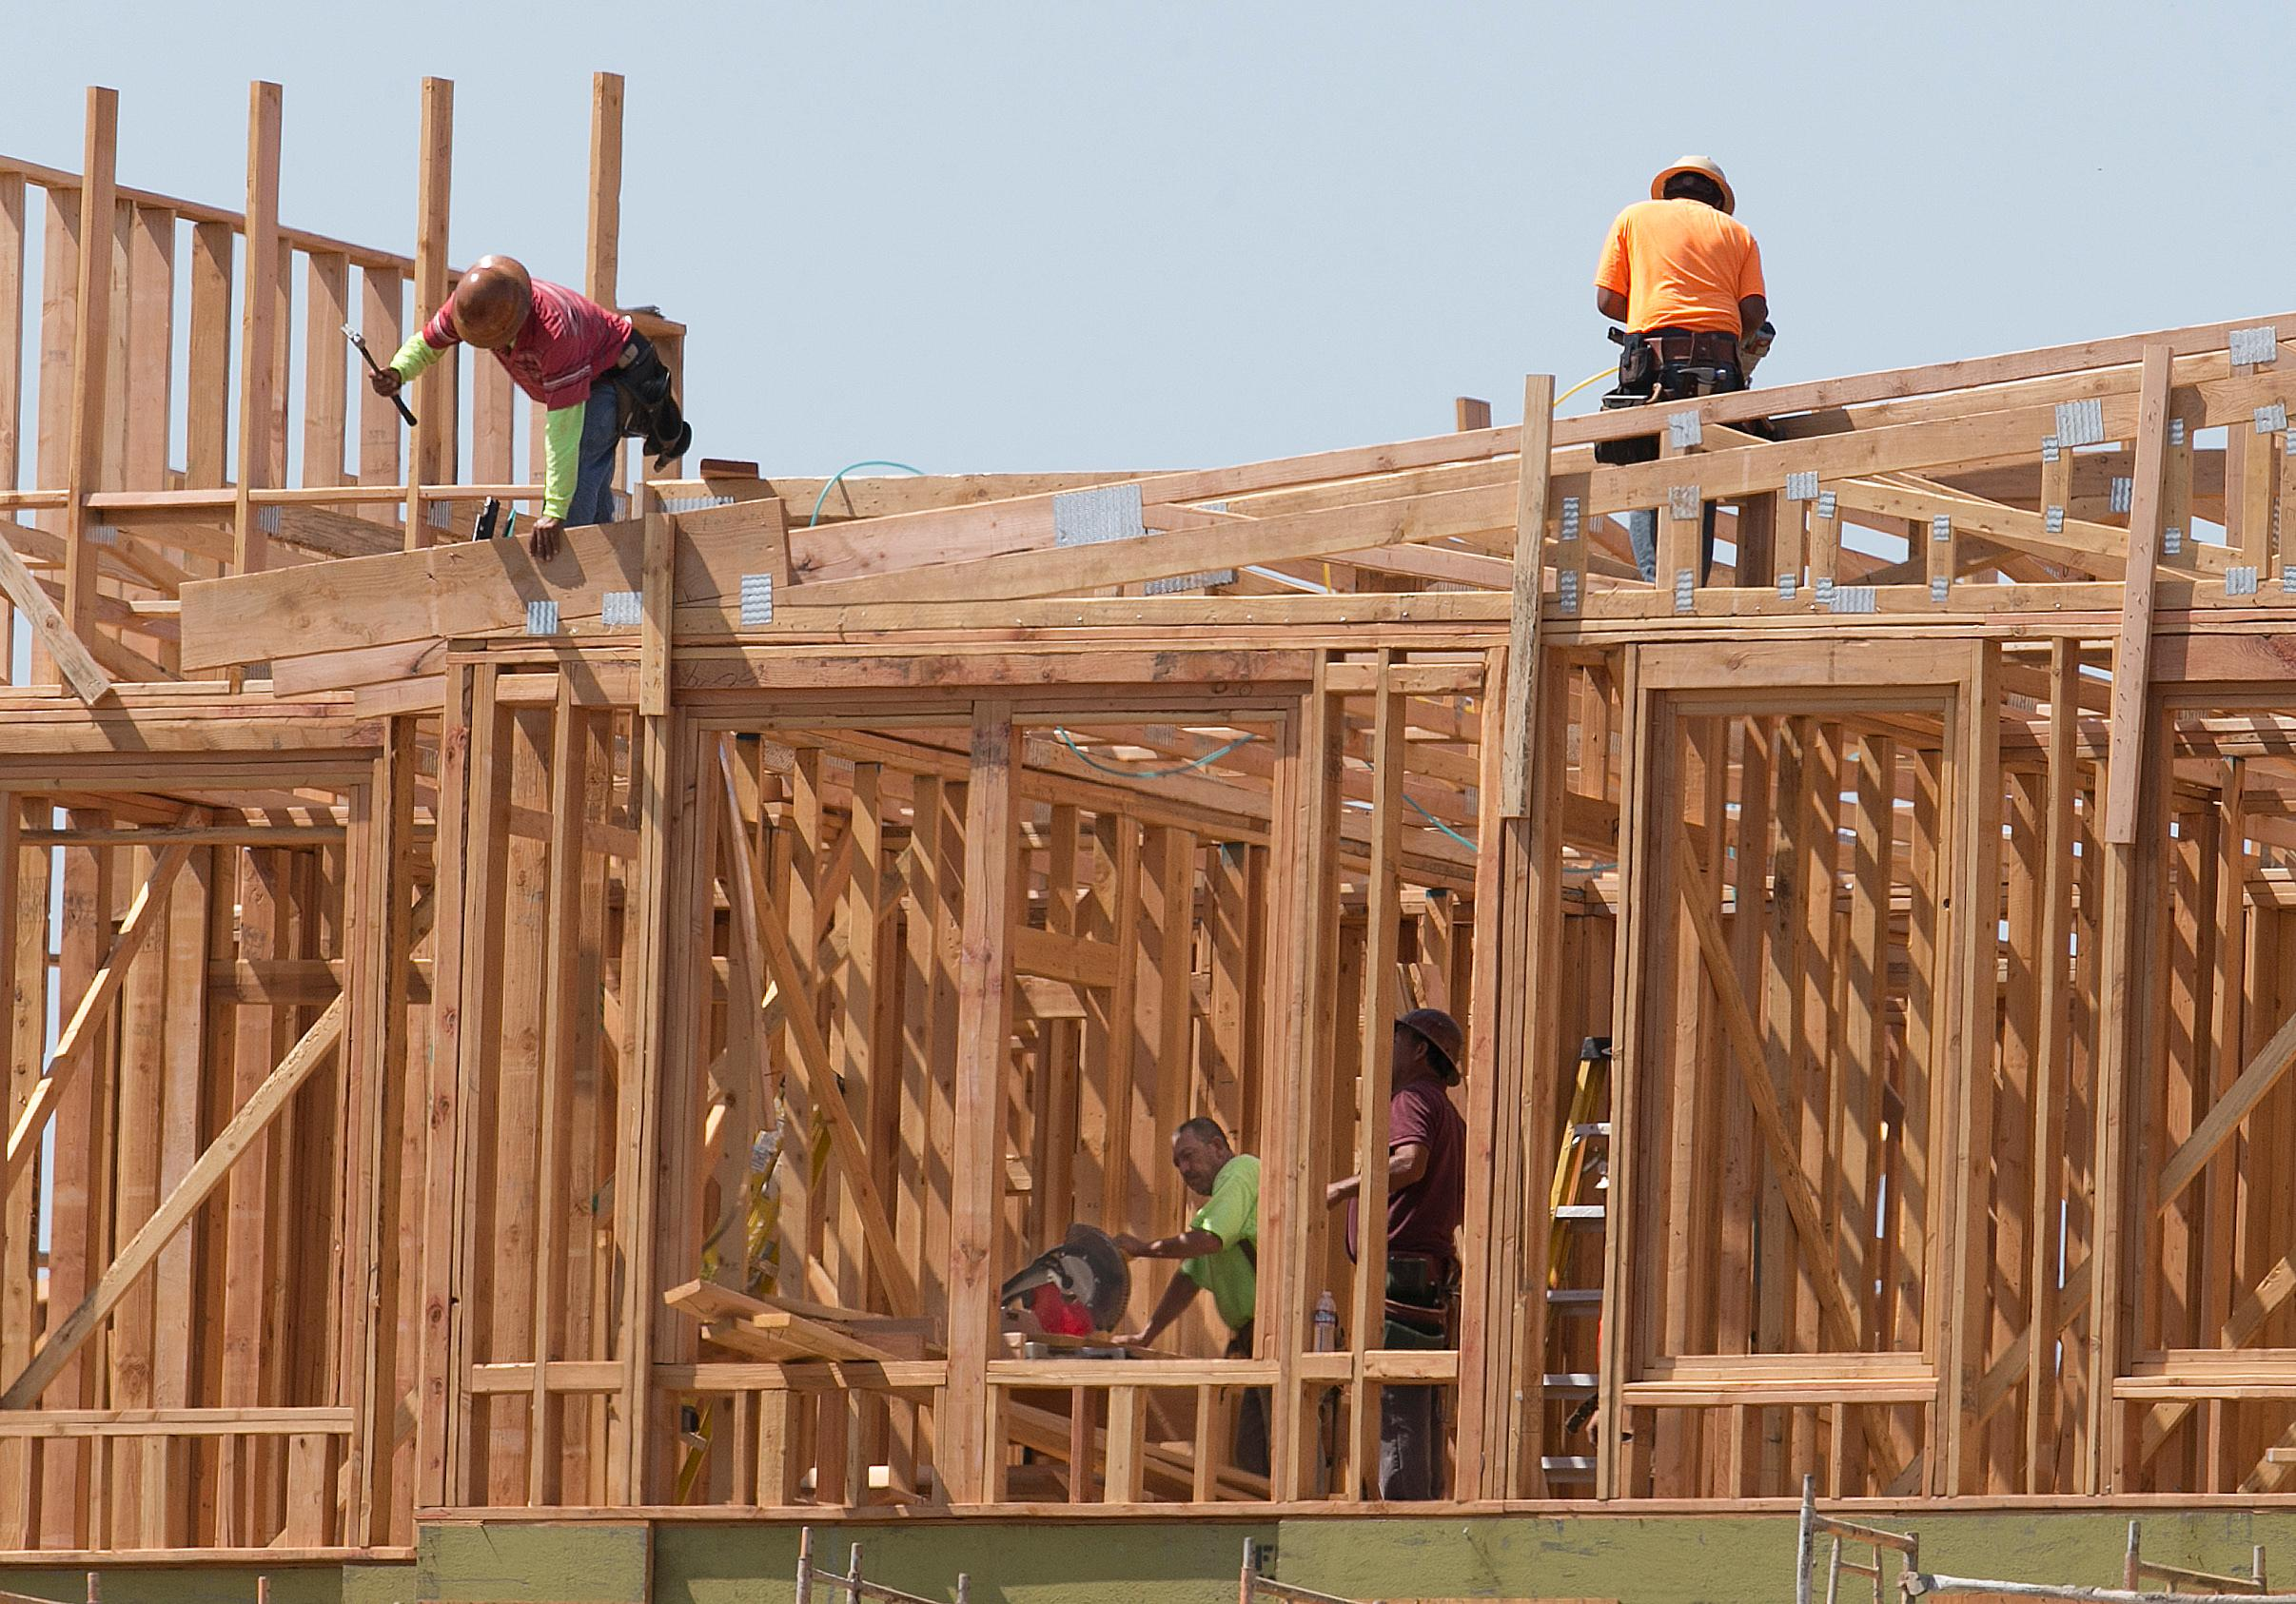 In this photo taken Friday, Aug. 18, 2017, builders work on an apartment complex in Sacramento, Calif. California lawmakers return Monday, Aug. 21 , from a monthlong break with a busy agenda that includes tackling the state's housing crisis and deciding whether to make California a statewide sanctuary for people living illegally in the U.S. (AP Photo/Rich Pedroncelli)